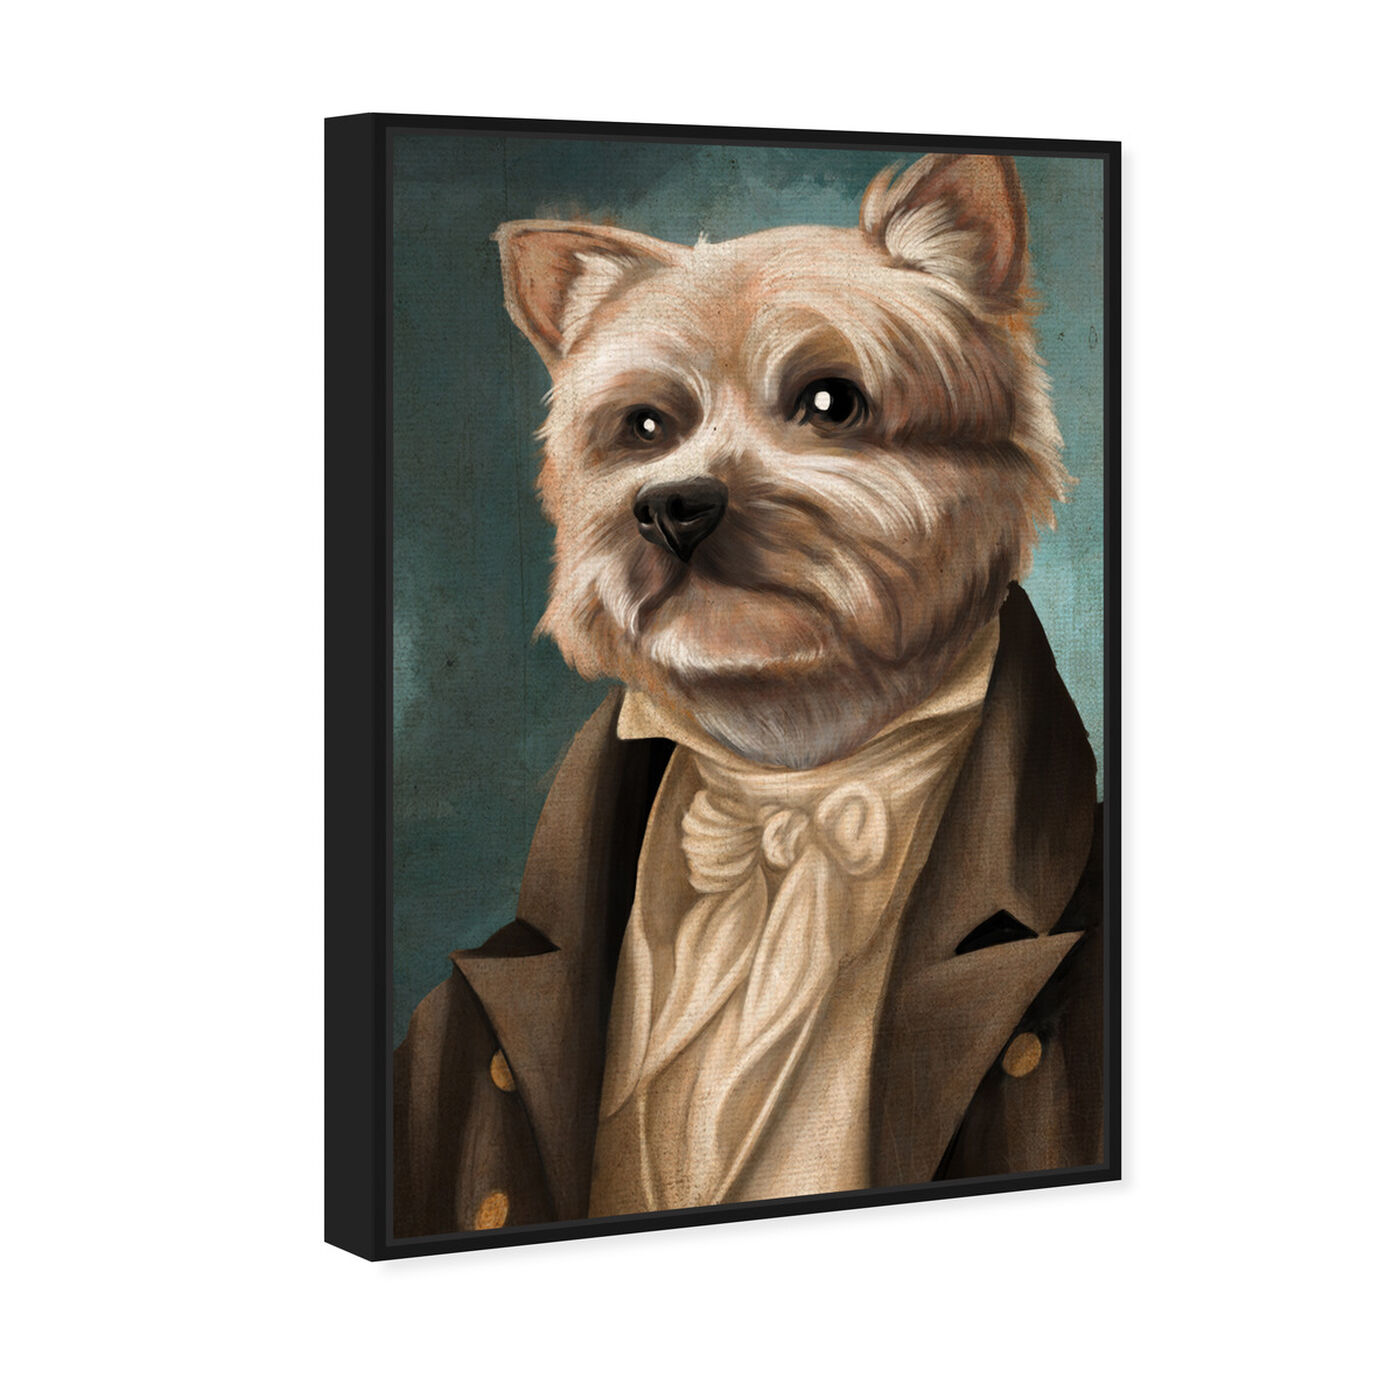 Angled view of Yorkie Gentlemen featuring animals and dogs and puppies art.